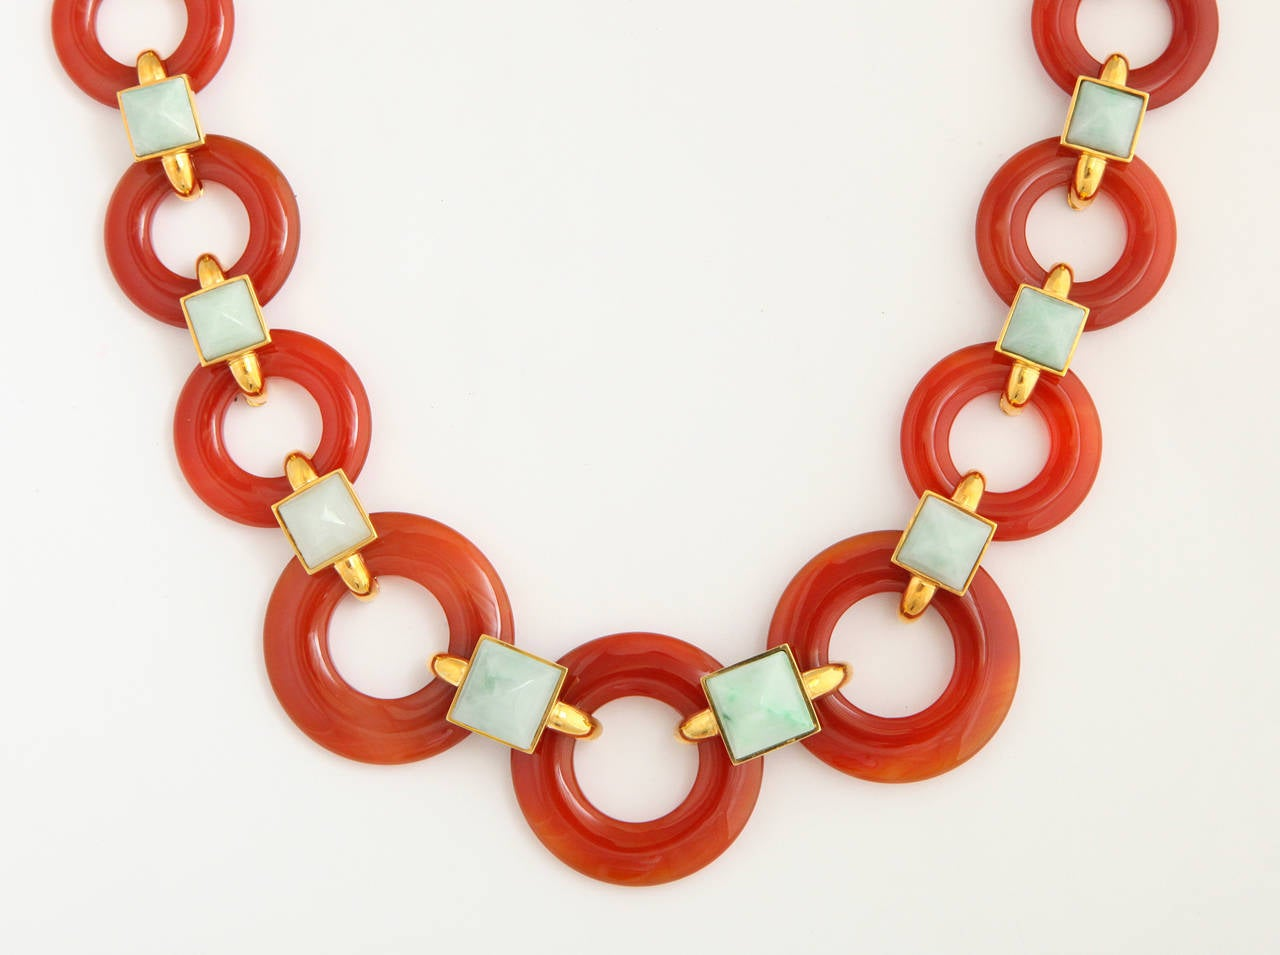 1970s Aldo Cipullo Carved Carnelian Jade Gold Link Necklace In Excellent Condition For Sale In New York, NY